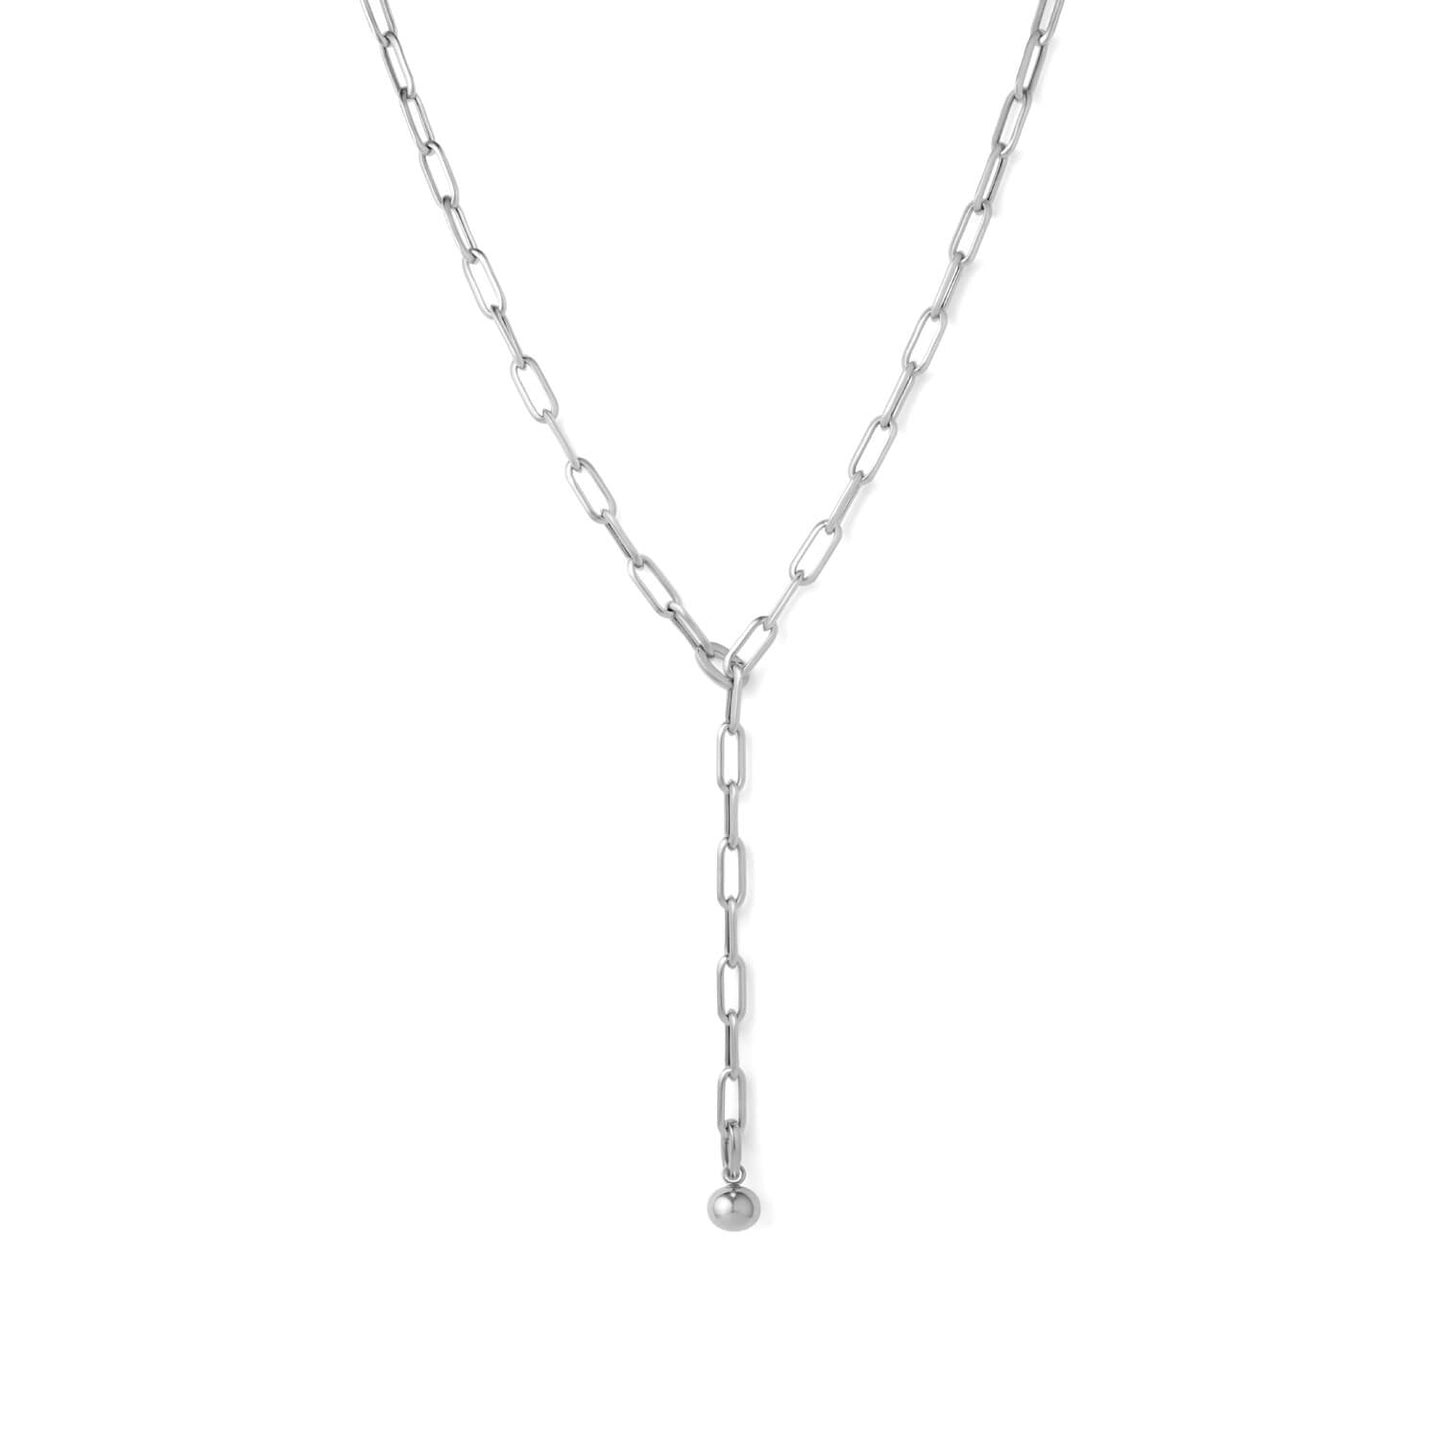 Silver Curator Necklace with Charm